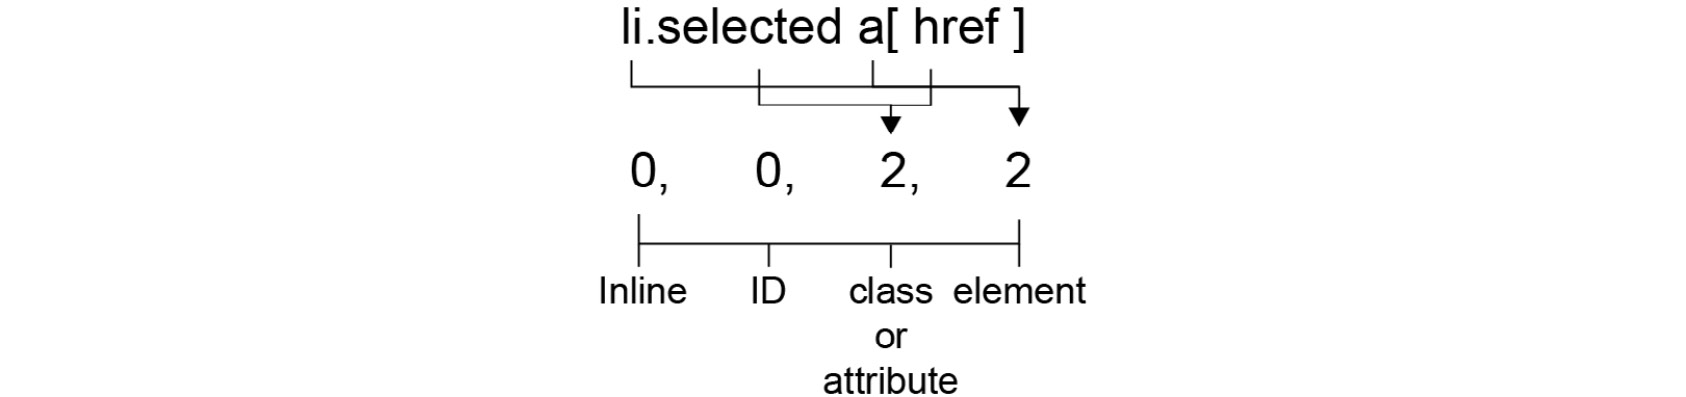 Figure 1.30: Calculating the specificity of li.selected a[href]